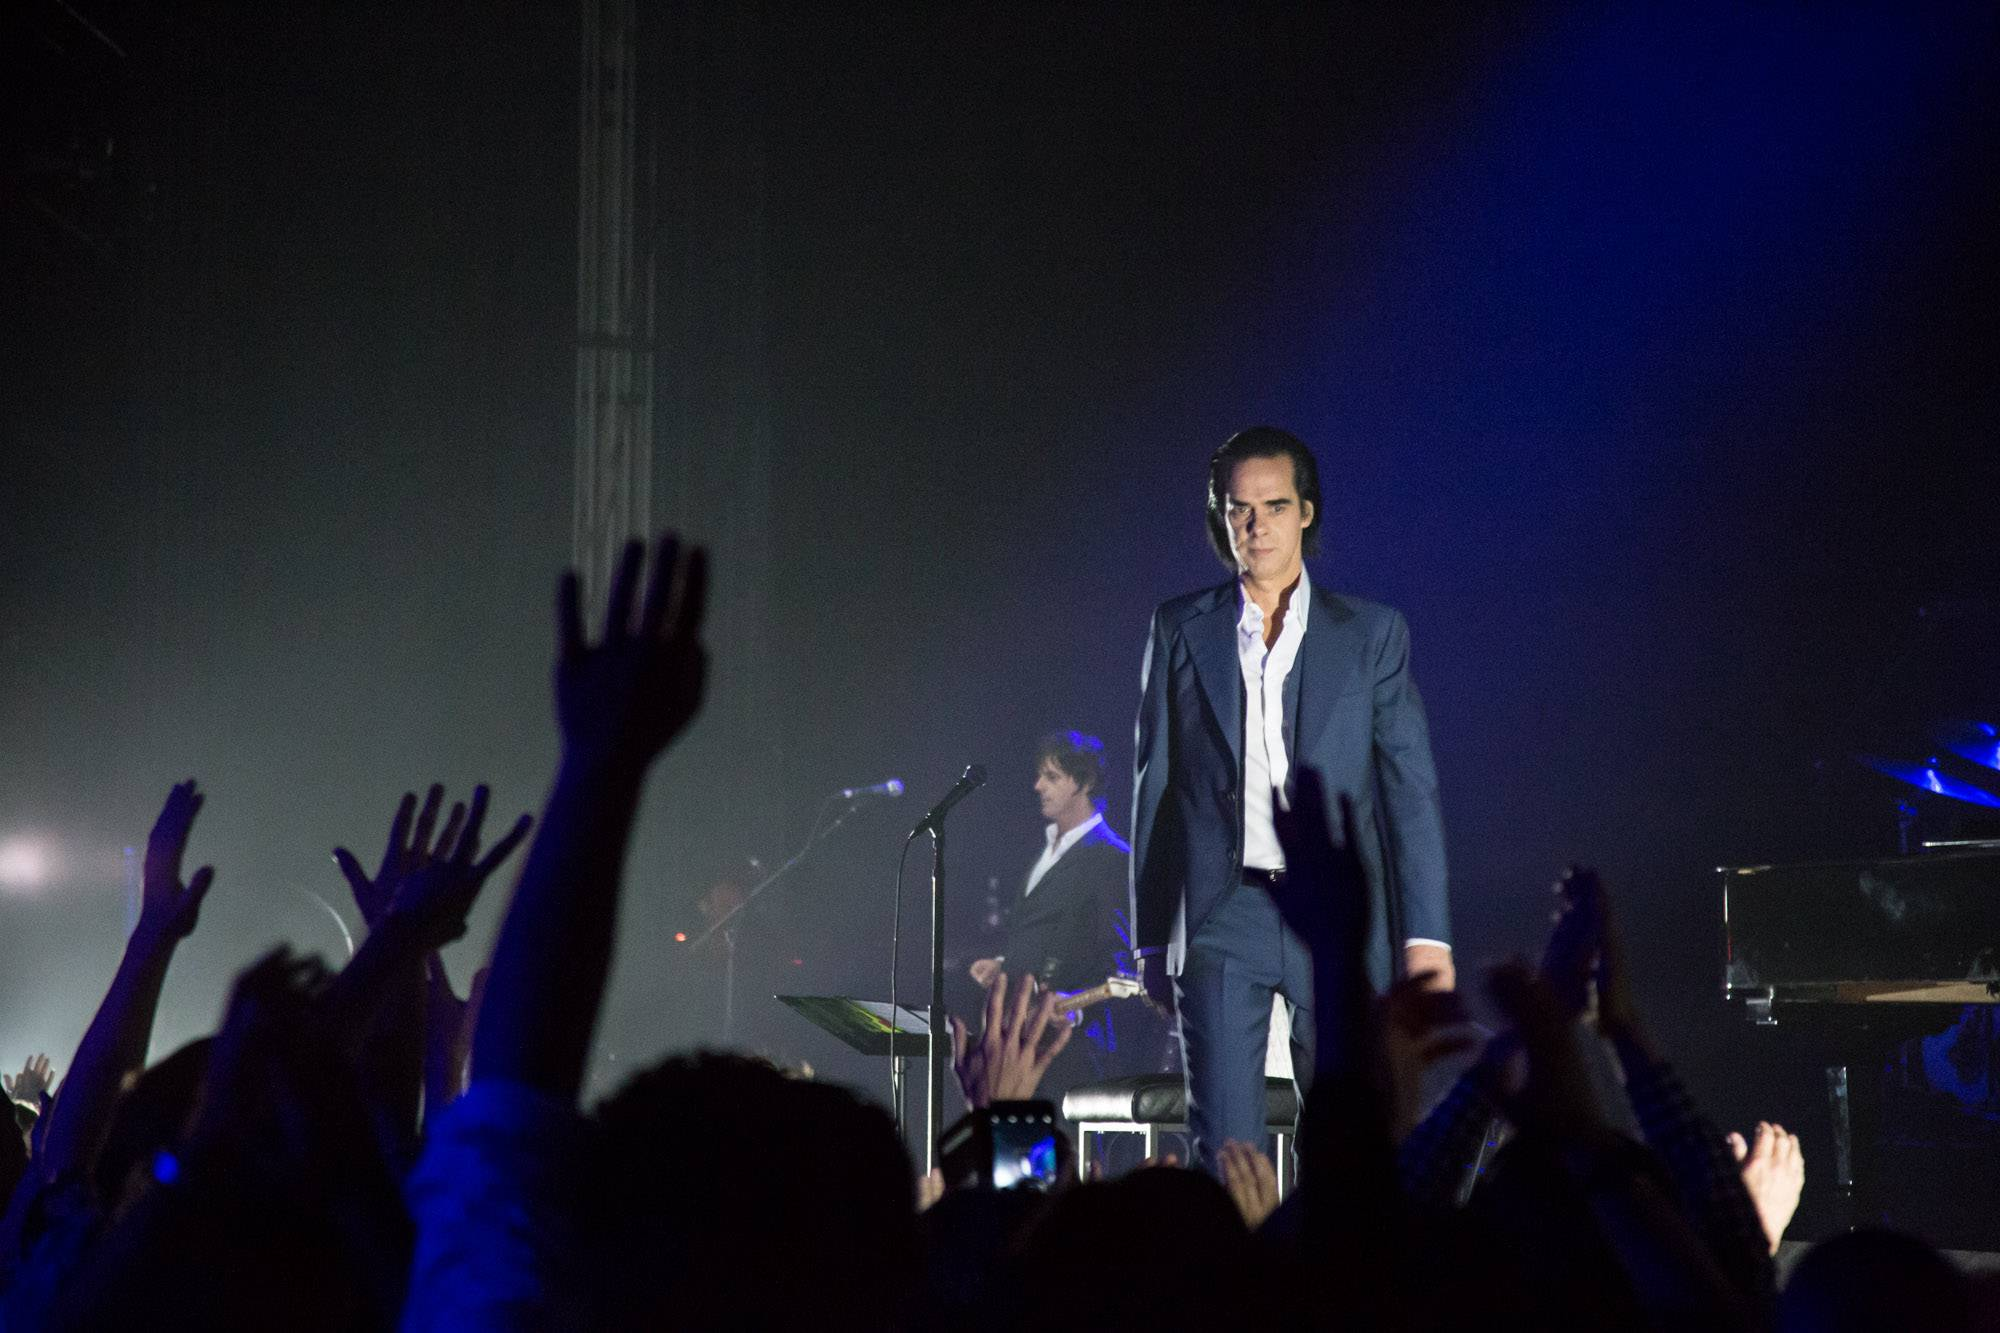 Nick Cave and the Bad Seeds at the Queen Elizabeth Theatre, Vancouver, June 22 2017. Kirk Chantraine photo.